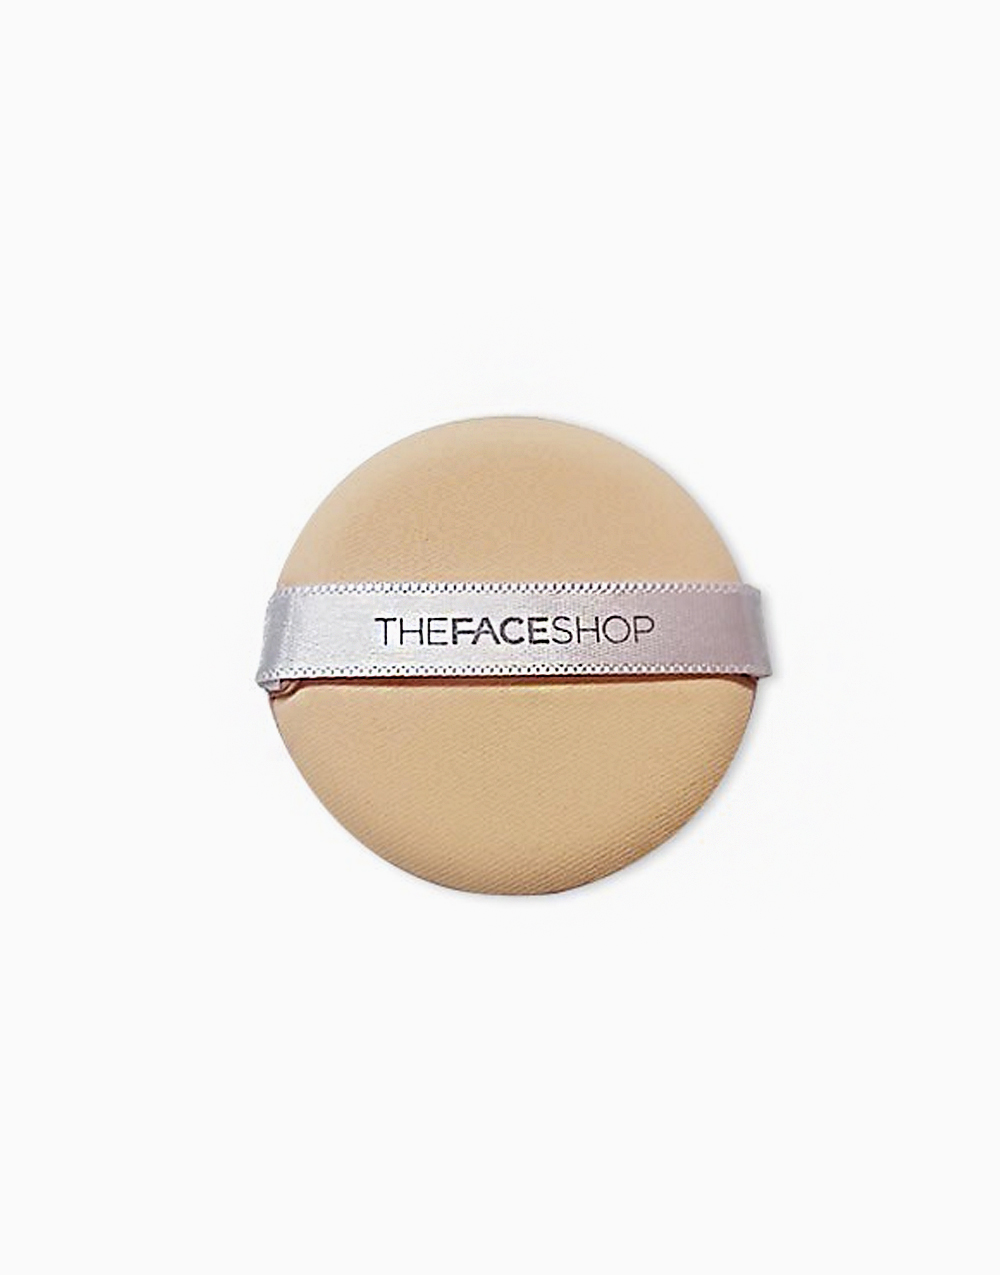 Tfs daily beauty tools air fitting cushion puff 2